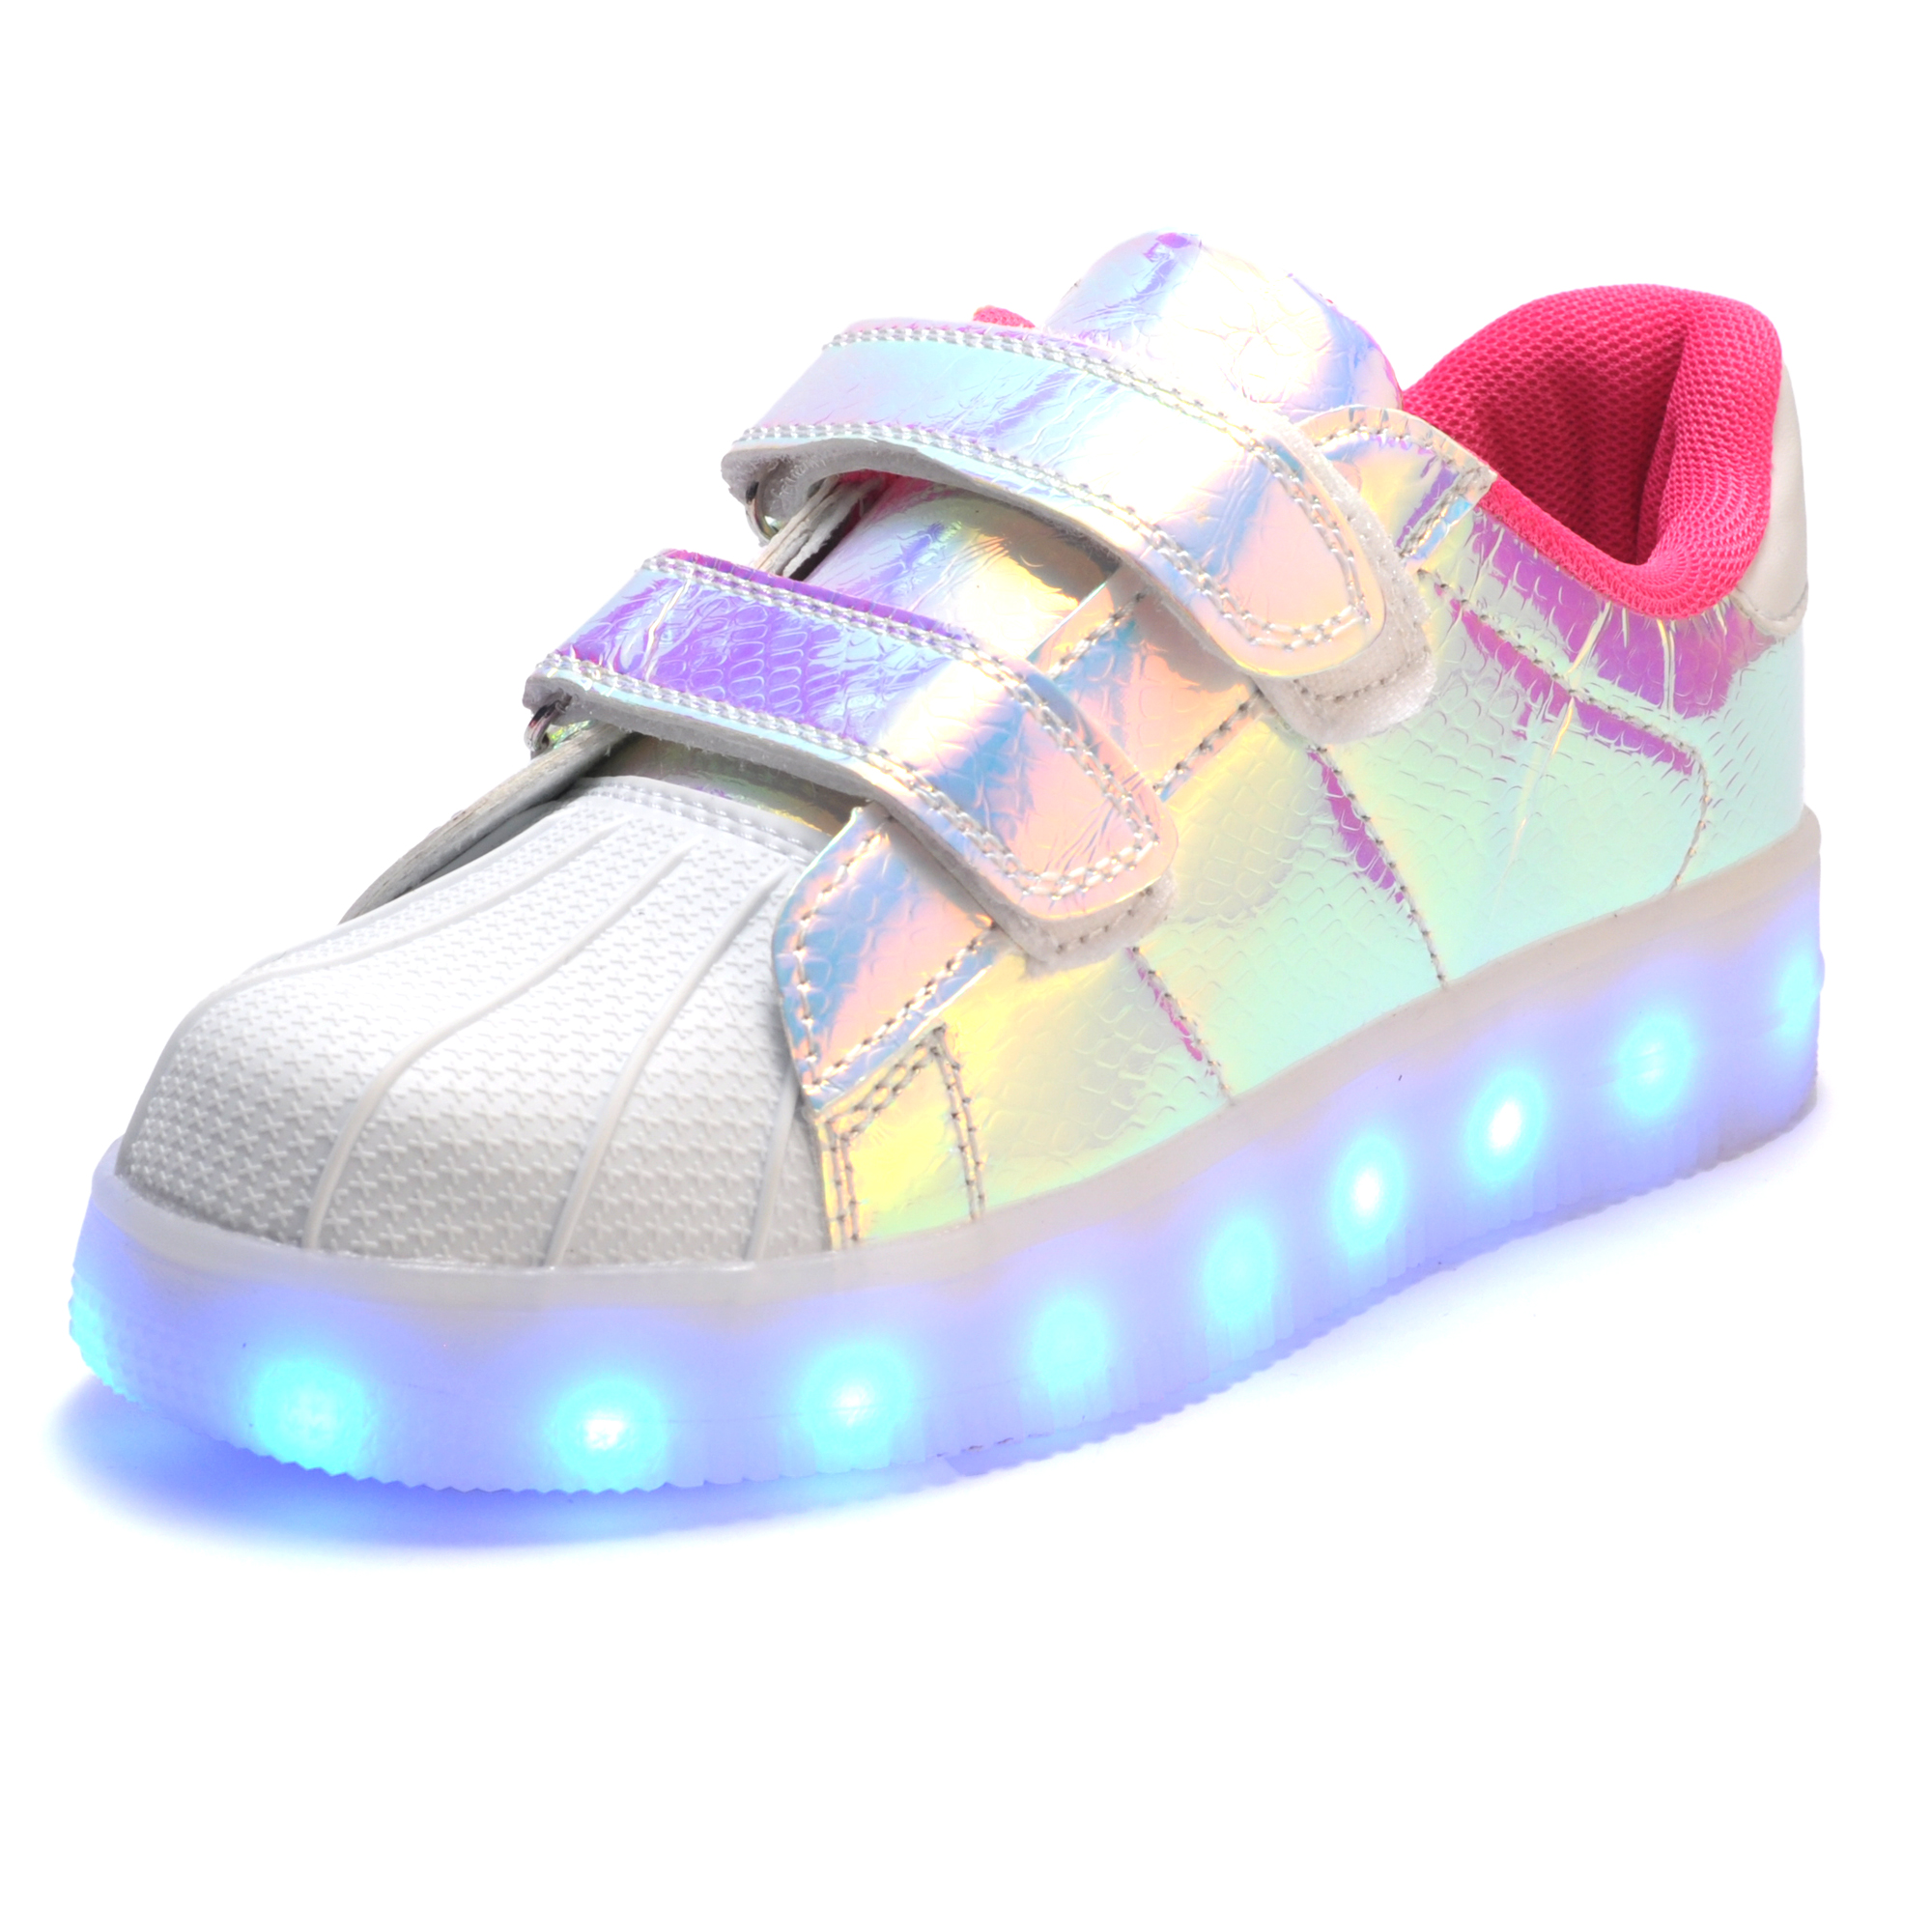 2017 Hot New Spring autumn Kids Sneakers Fashion Luminous Lighted Colorful LED lights Children Shoes Casual Flat Boy girl Shoes tutuyu camo luminous glowing sneakers child kids sneakers luminous colorful led lights children shoes girls boy shoes